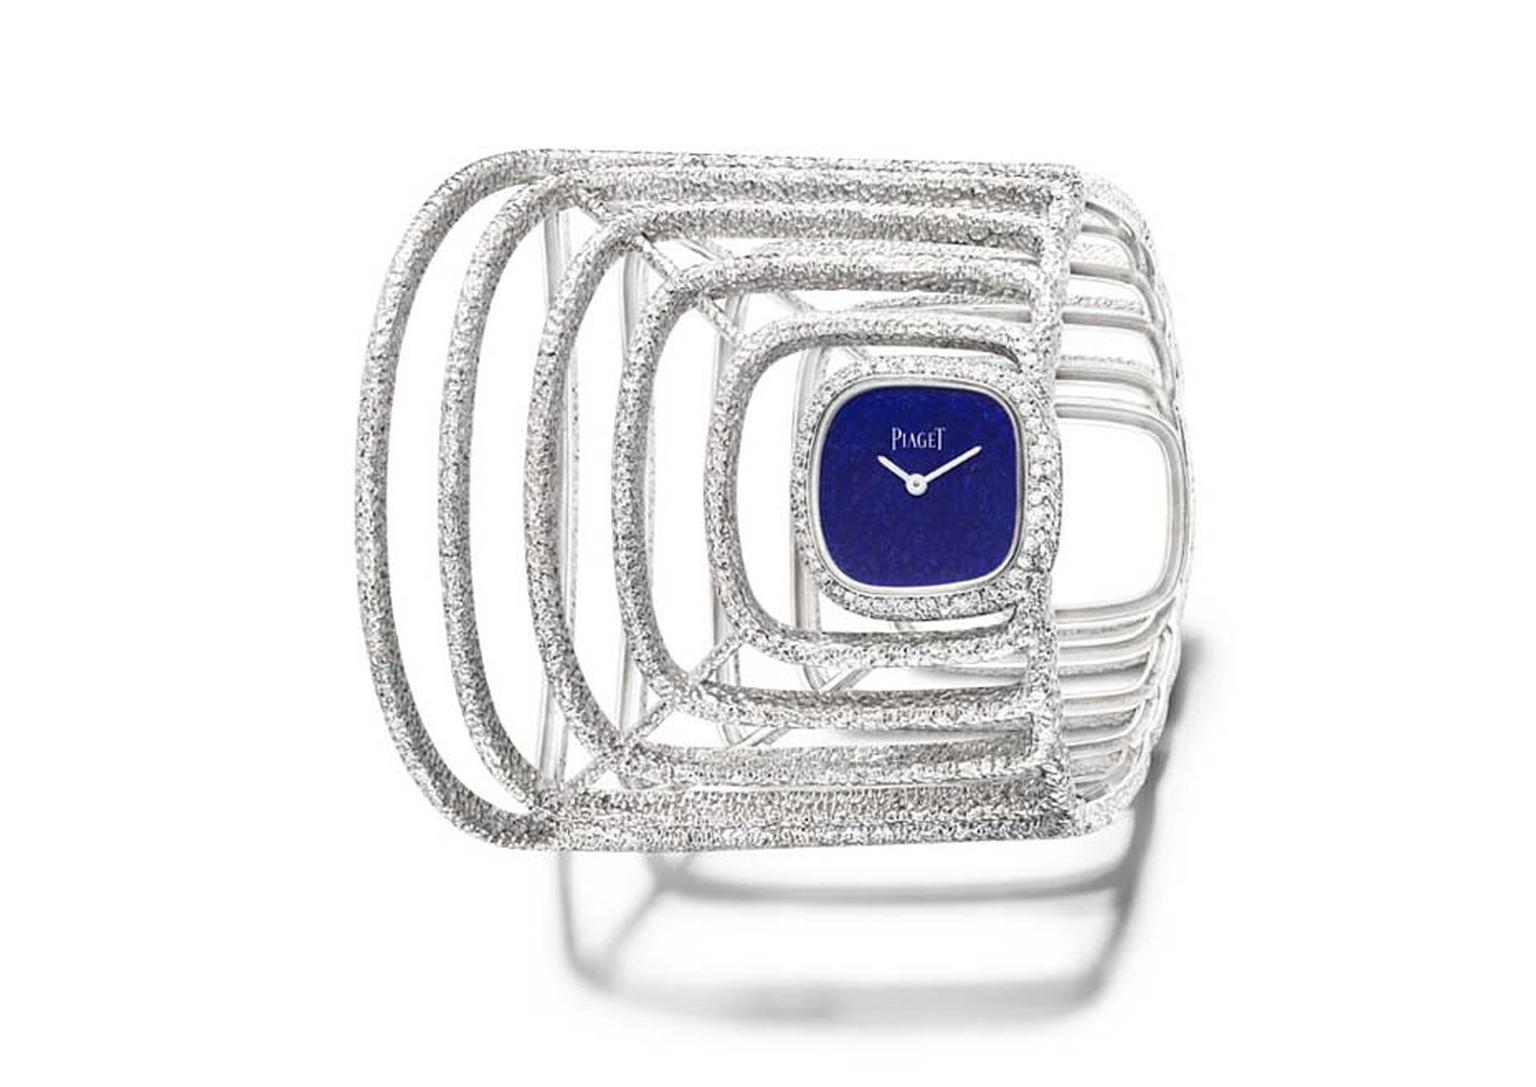 Piaget's Extremely Piaget collection watch cuff is made from hammered white gold and set with 236 brilliant-cut diamonds and a natural lapis lazuli dial.